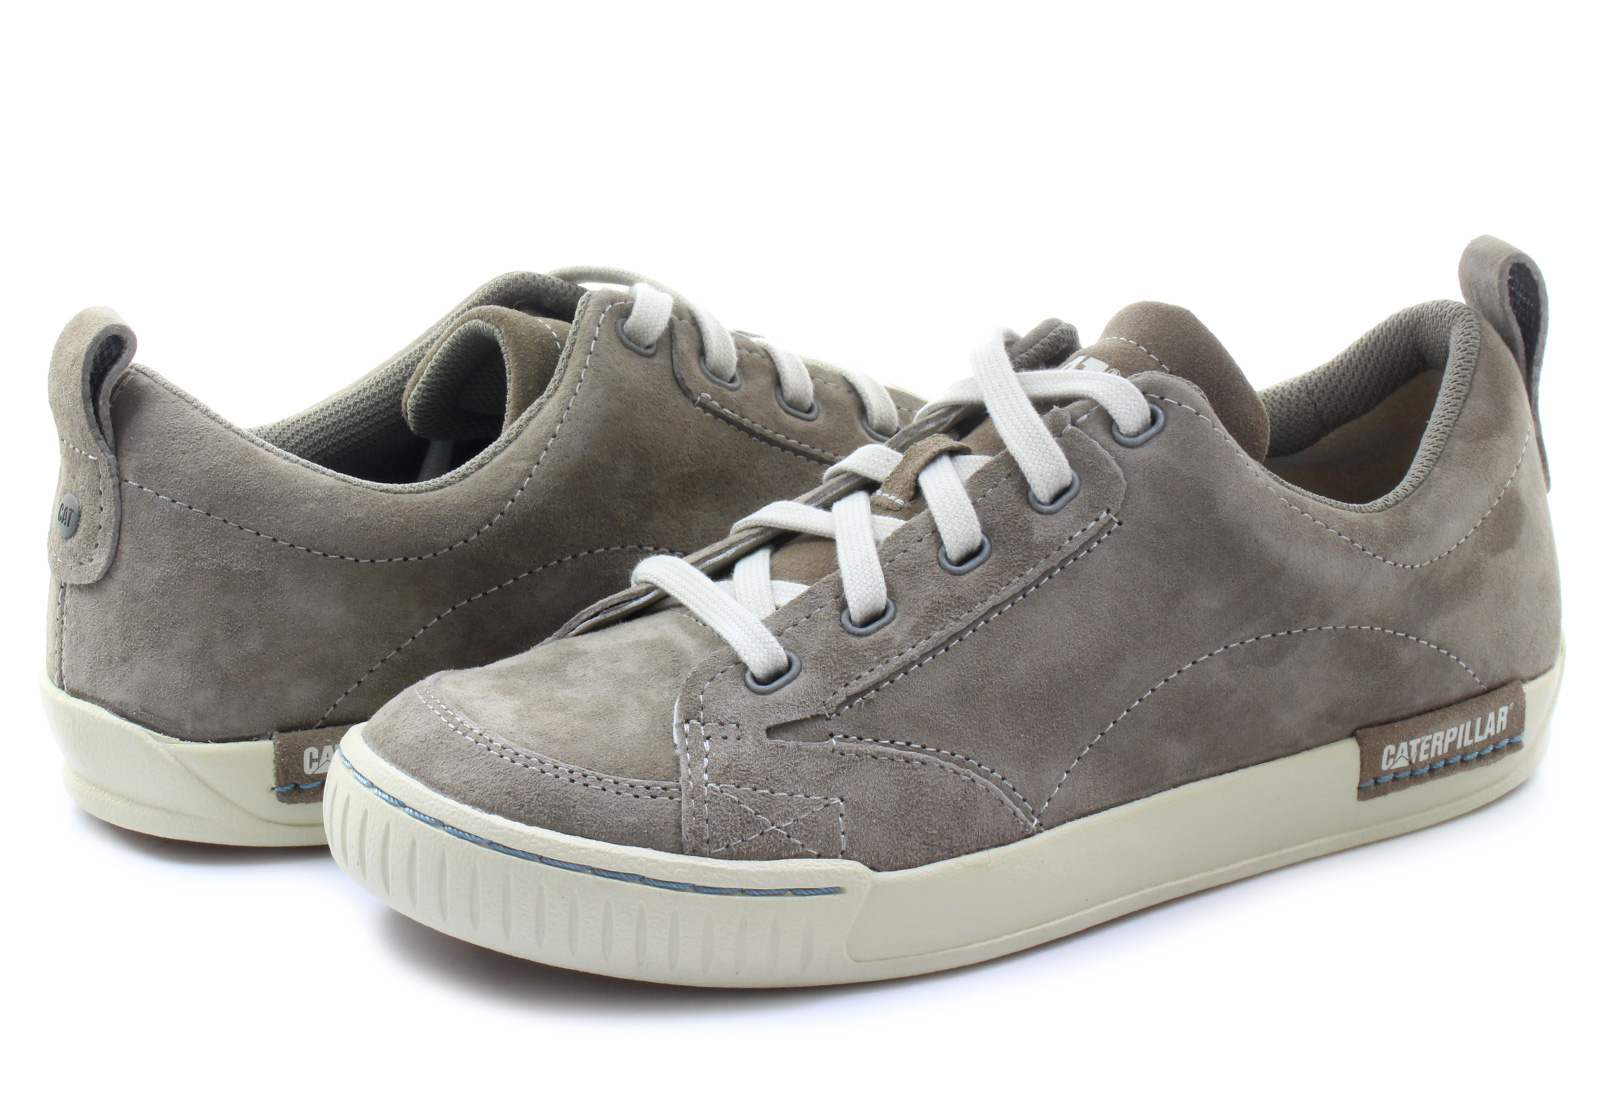 Cat shoes modesto 713629 gry online shop for sneakers shoes and